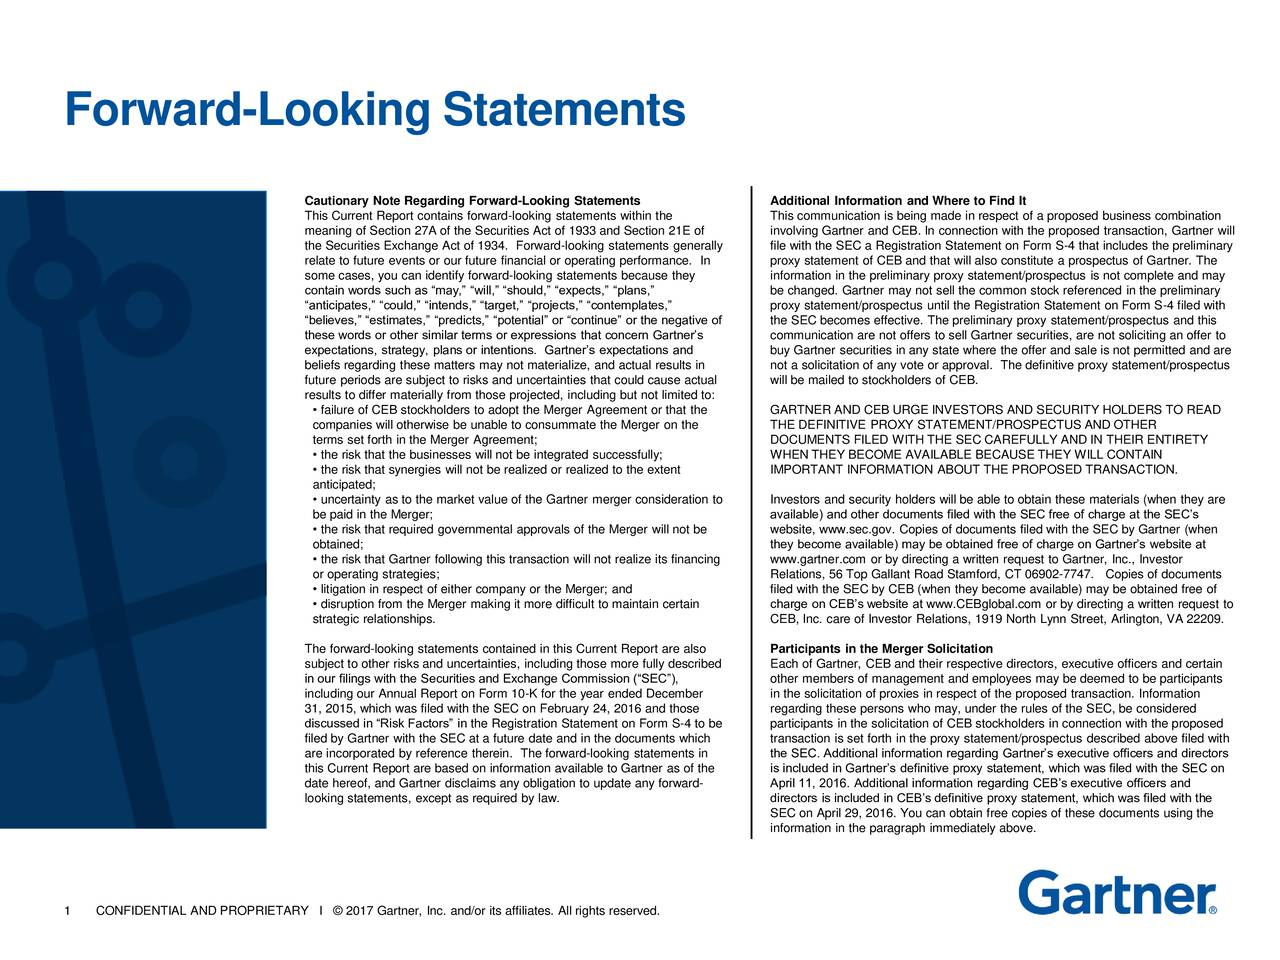 Cautionary Note Regarding Forward-Looking Statements Additional Information and Where to Find It This Current Report contains forward-looking statements within the This communication is being made in respect of a proposed business combination meaning of Section 27A of the Securities Act of 1933 and Section 21E of involving Gartner and CEB. In connection with the proposed transaction, Gartner will the Securities Exchange Act of 1934. Forward-looking statements generally file with the SEC a Registration Statement on Form S-4 that includes the preliminary relate to future events or our future financial or operating performance. In proxy statement of CEB and that will also constitute a prospectus of Gartner. The some cases, you can identify forward-looking statements because they information in the preliminary proxy statement/prospectus is not complete and may contain words such as may, will, should, expects, plans, be changed. Gartner may not sell the common stock referenced in the preliminary anticipates, could, intends, target, projects, contemplates, proxy statement/prospectus until the Registration Statement on Form S-4 filed with believes, estimates, predicts, potential or continue or the negative of the SEC becomes effective. The preliminary proxy statement/prospectus and this these words or other similar terms or expressions that concern Gartners communication are not offers to sell Gartner securities, are not soliciting an offer to expectations, strategy, plans or intentions. Gartners expectations and buy Gartner securities in any state where the offer and sale is not permitted and are beliefs regarding these matters may not materialize, and actual results in not a solicitation of any vote or approval. The definitive proxy statement/prospectus future periods are subject to risks and uncertainties that could cause actual will be mailed to stockholders of CEB. results to differ materially from those projected, including but not limited to: failure of CEB stockhol